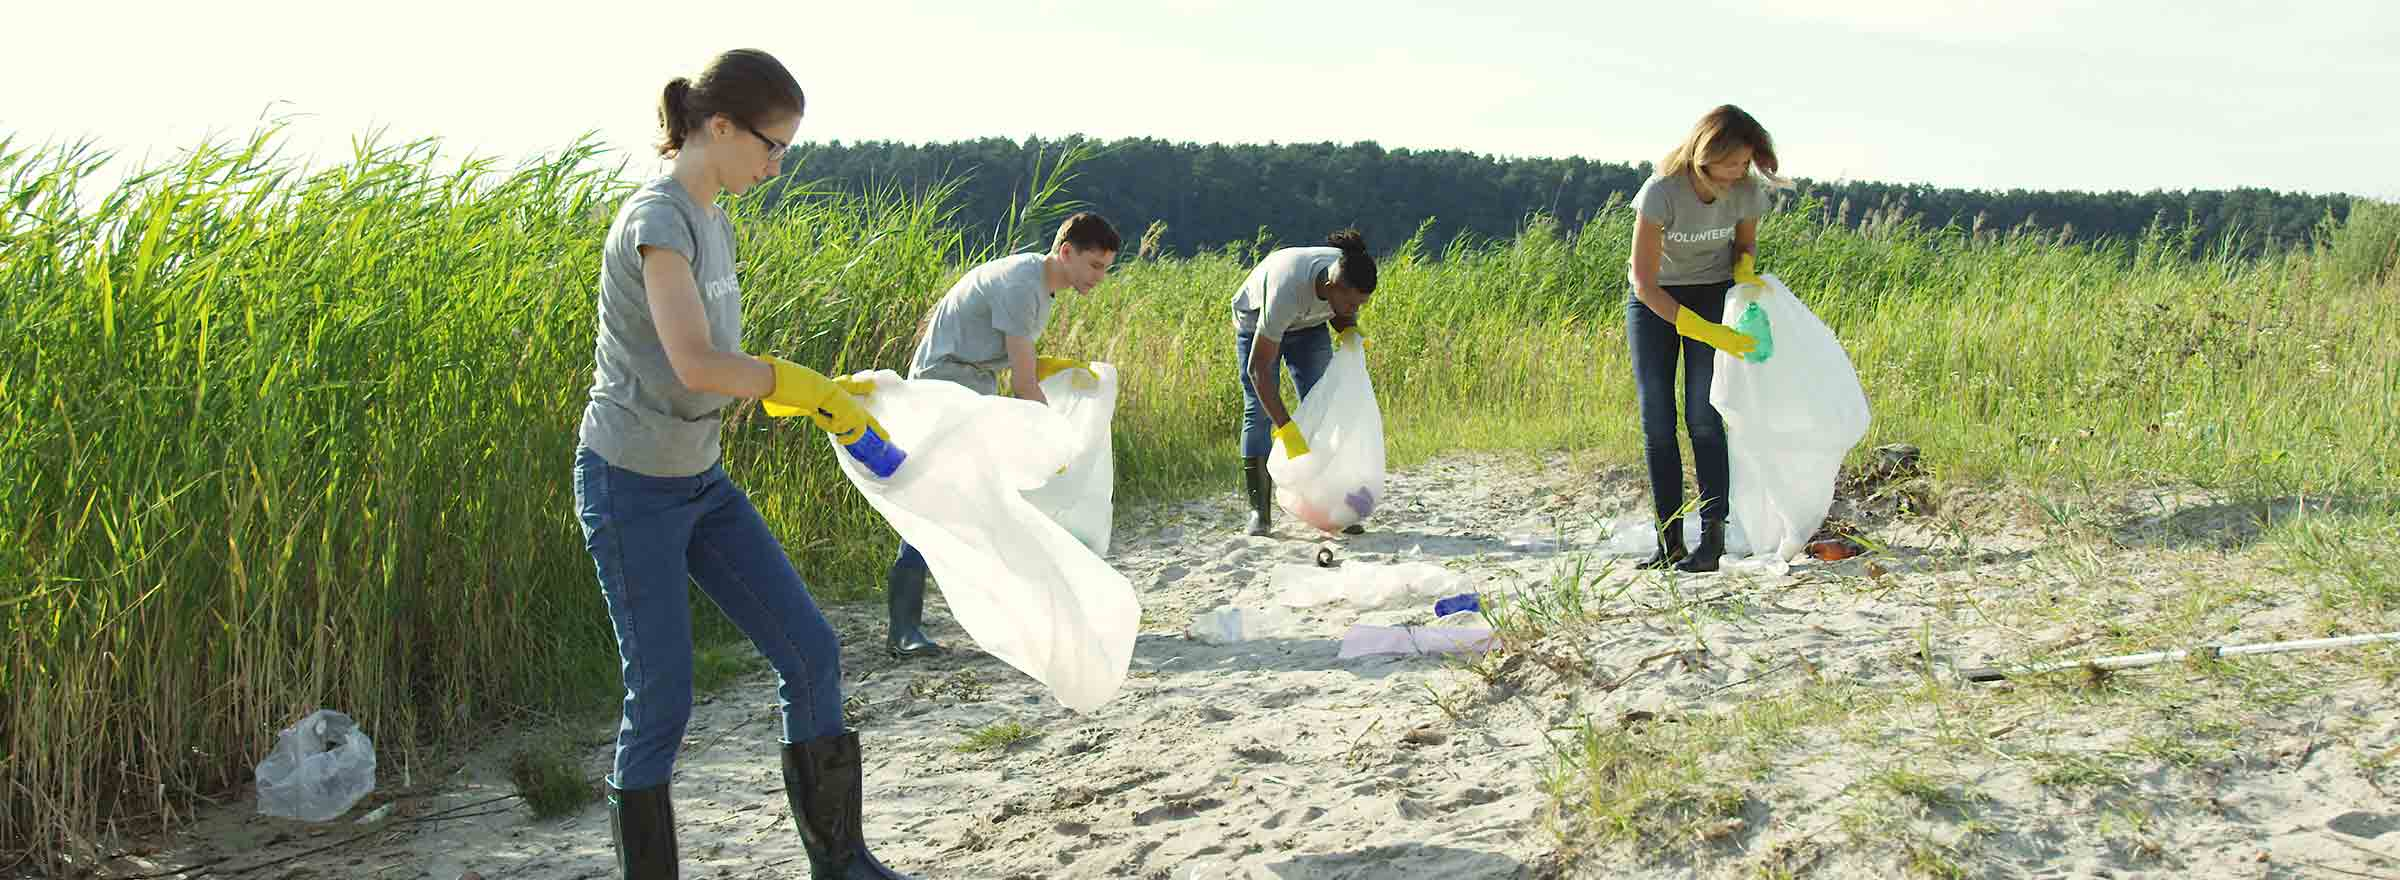 four people in volunteer tee shirts pick up trash in a natural area